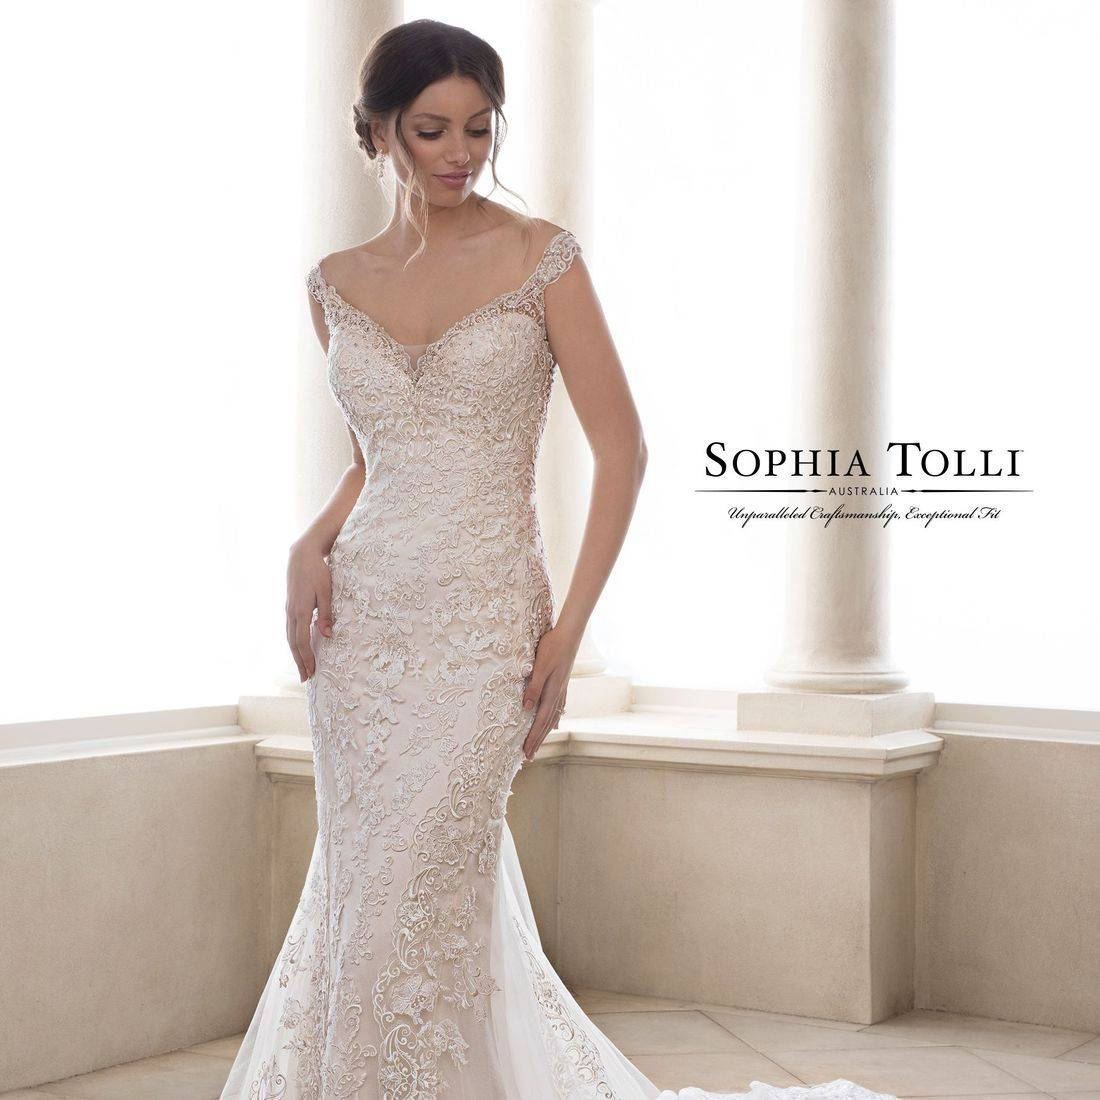 sophia tolli, sophia tolli wedding dress, fit and flare, lace, sparkle, dipped back, v neck, fitted wedding dress, straps, sweetheart neck, sexy back, stunning back, 3 tiered train, heart shaped train